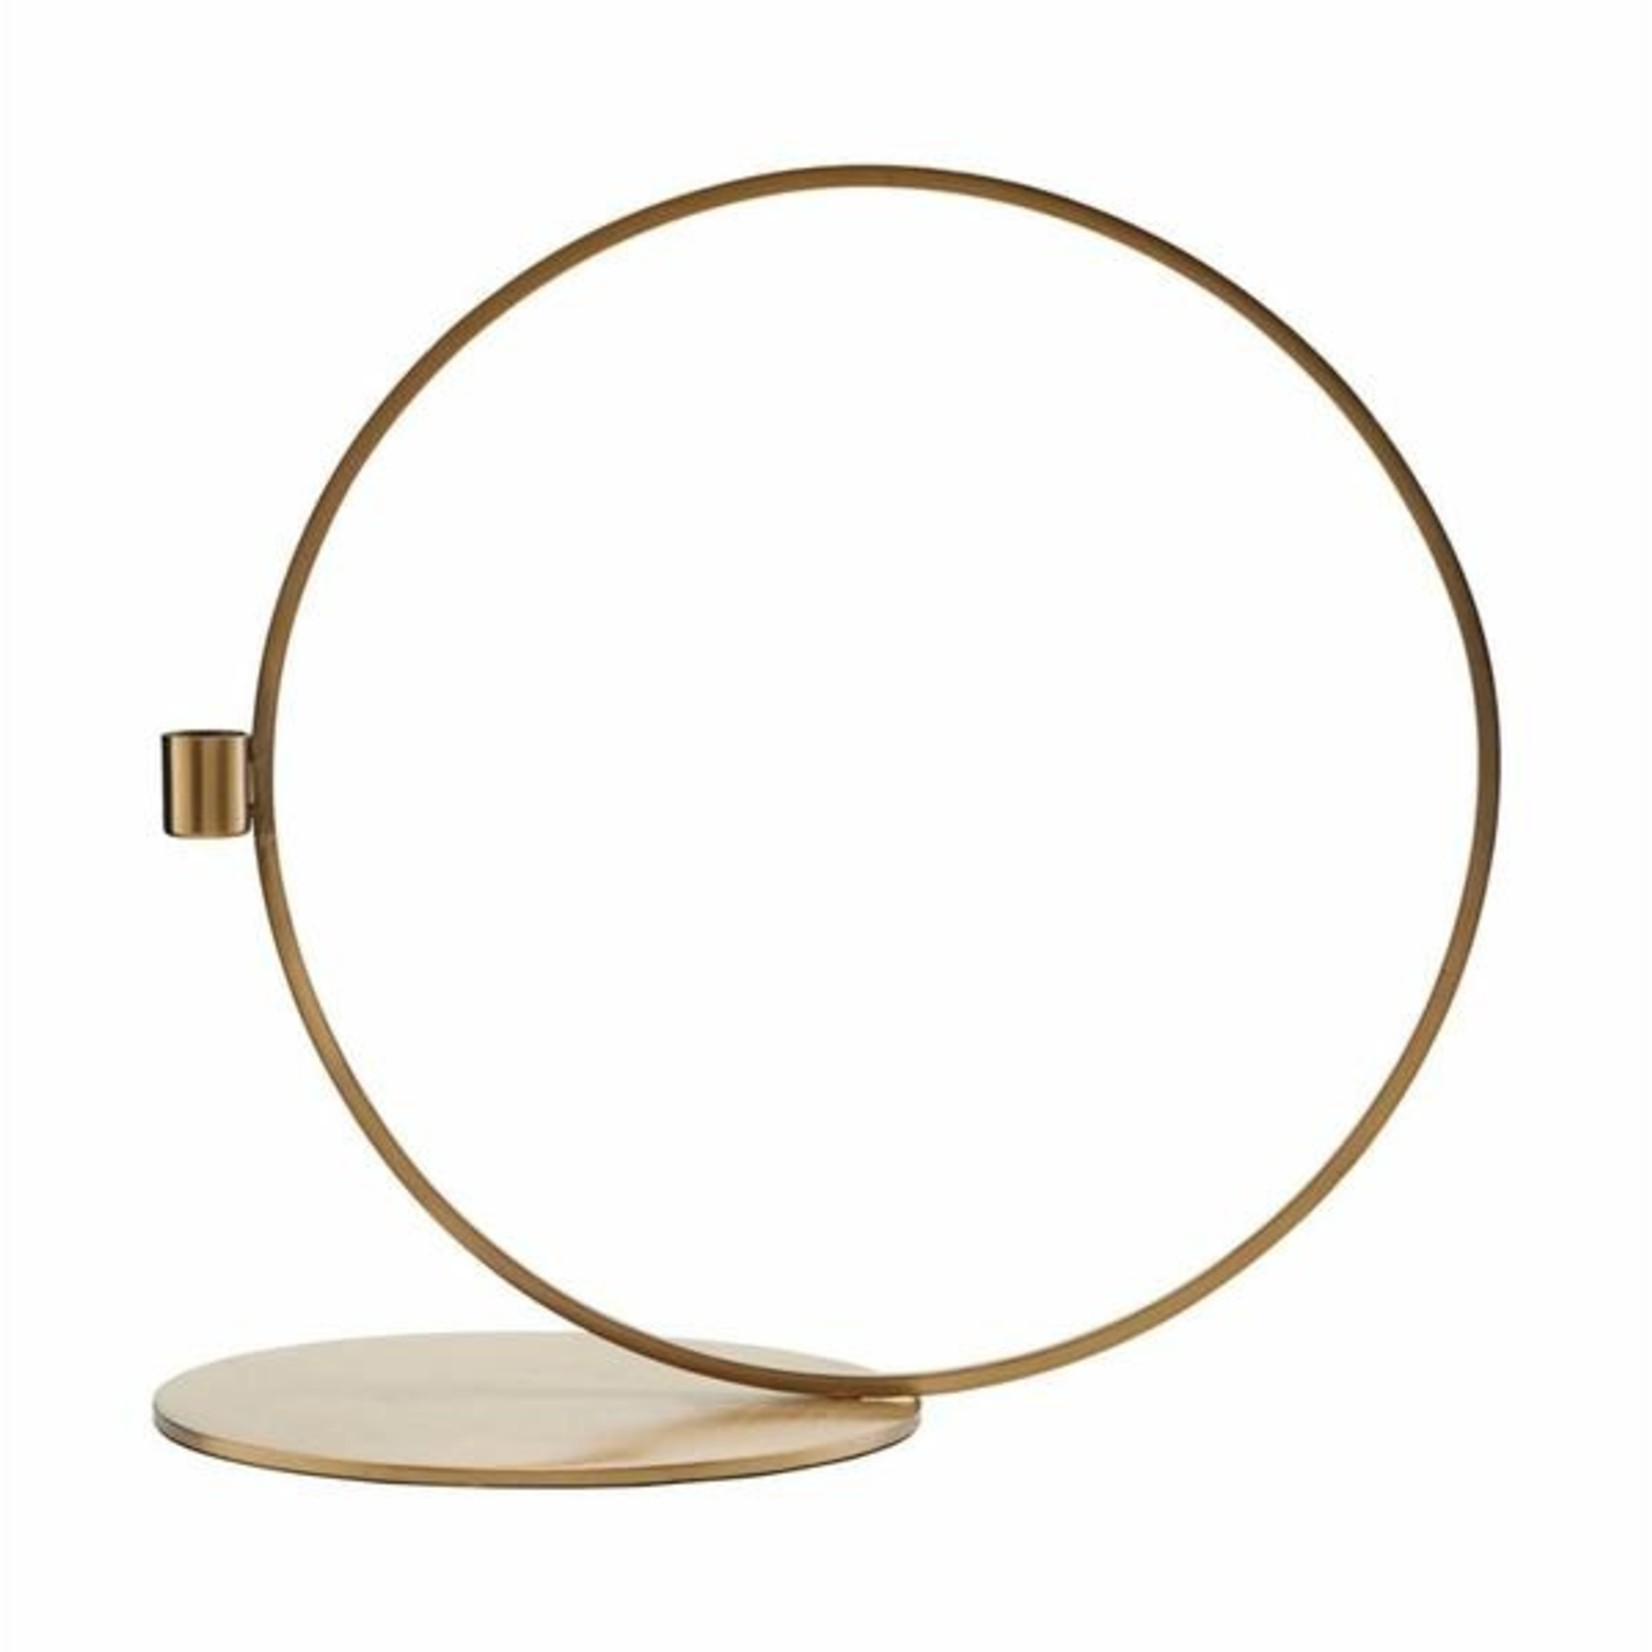 House Doctor Candle stand, Cirque, Brass finish